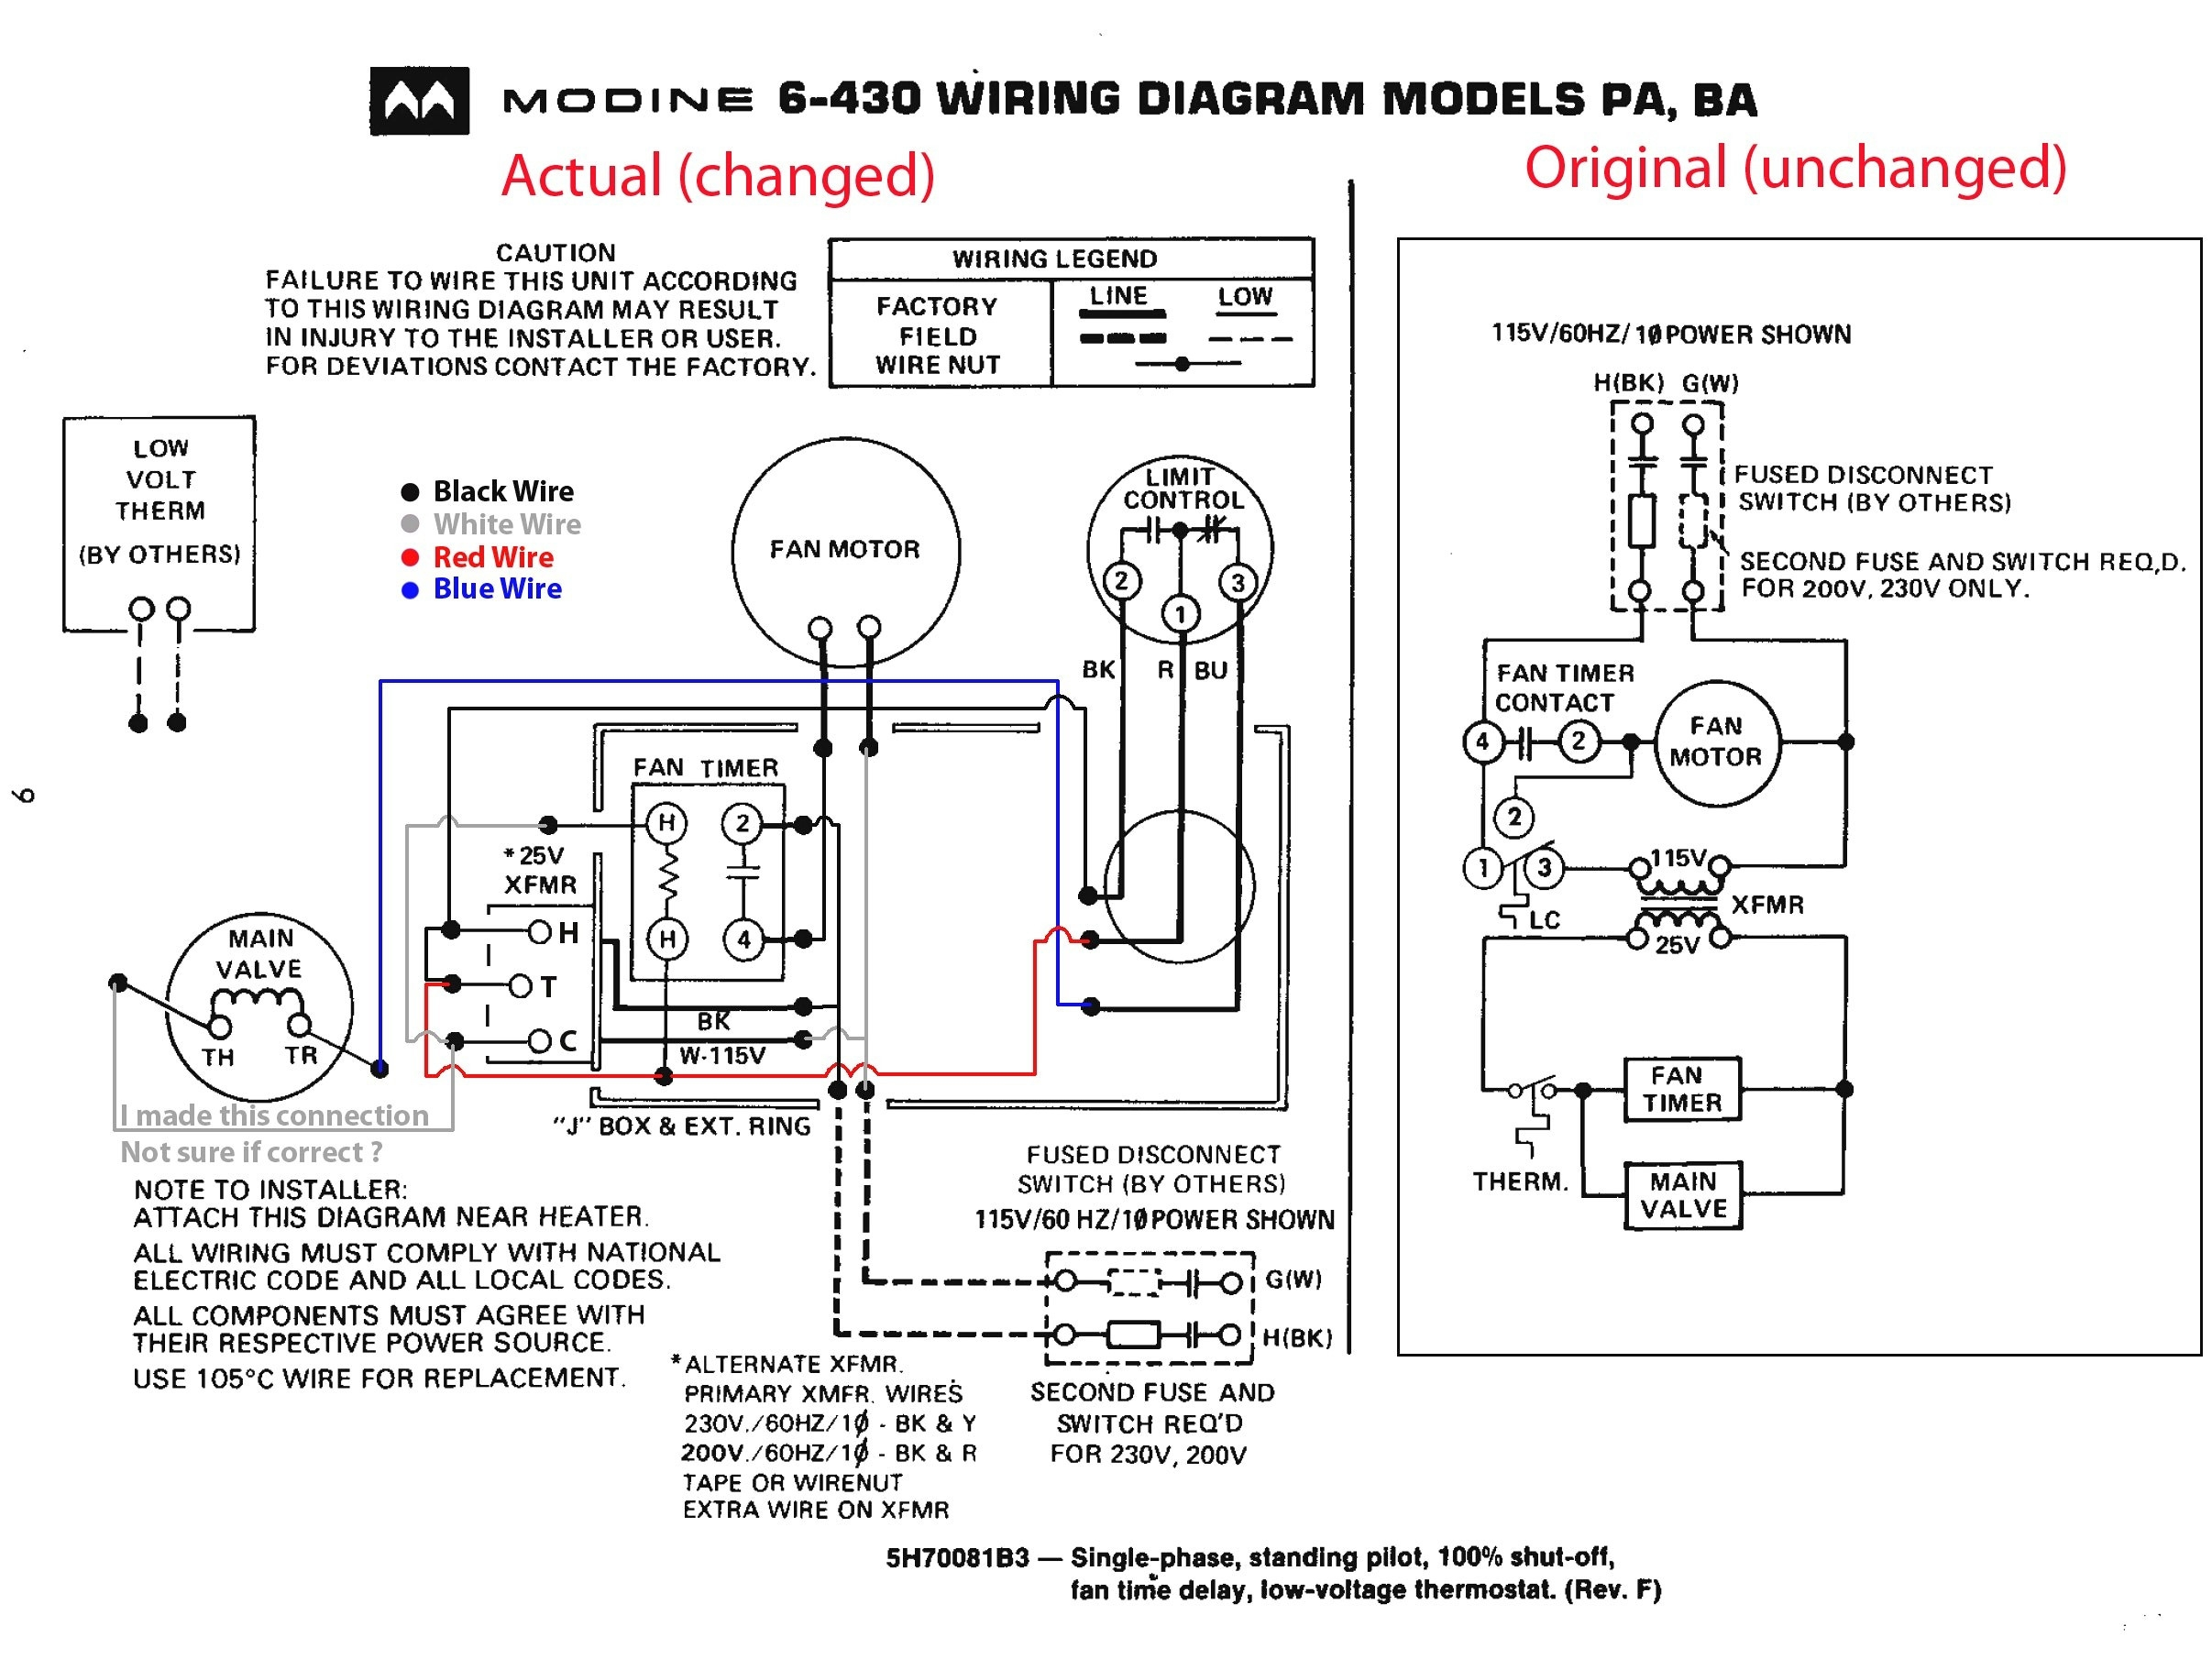 atwood water heater switch wiring diagram Collection-Wiring Diagram for Water Heater Refrence Wiring Diagram for Rv Furnace Fresh Wonderful atwood Furnace Wiring 4-t